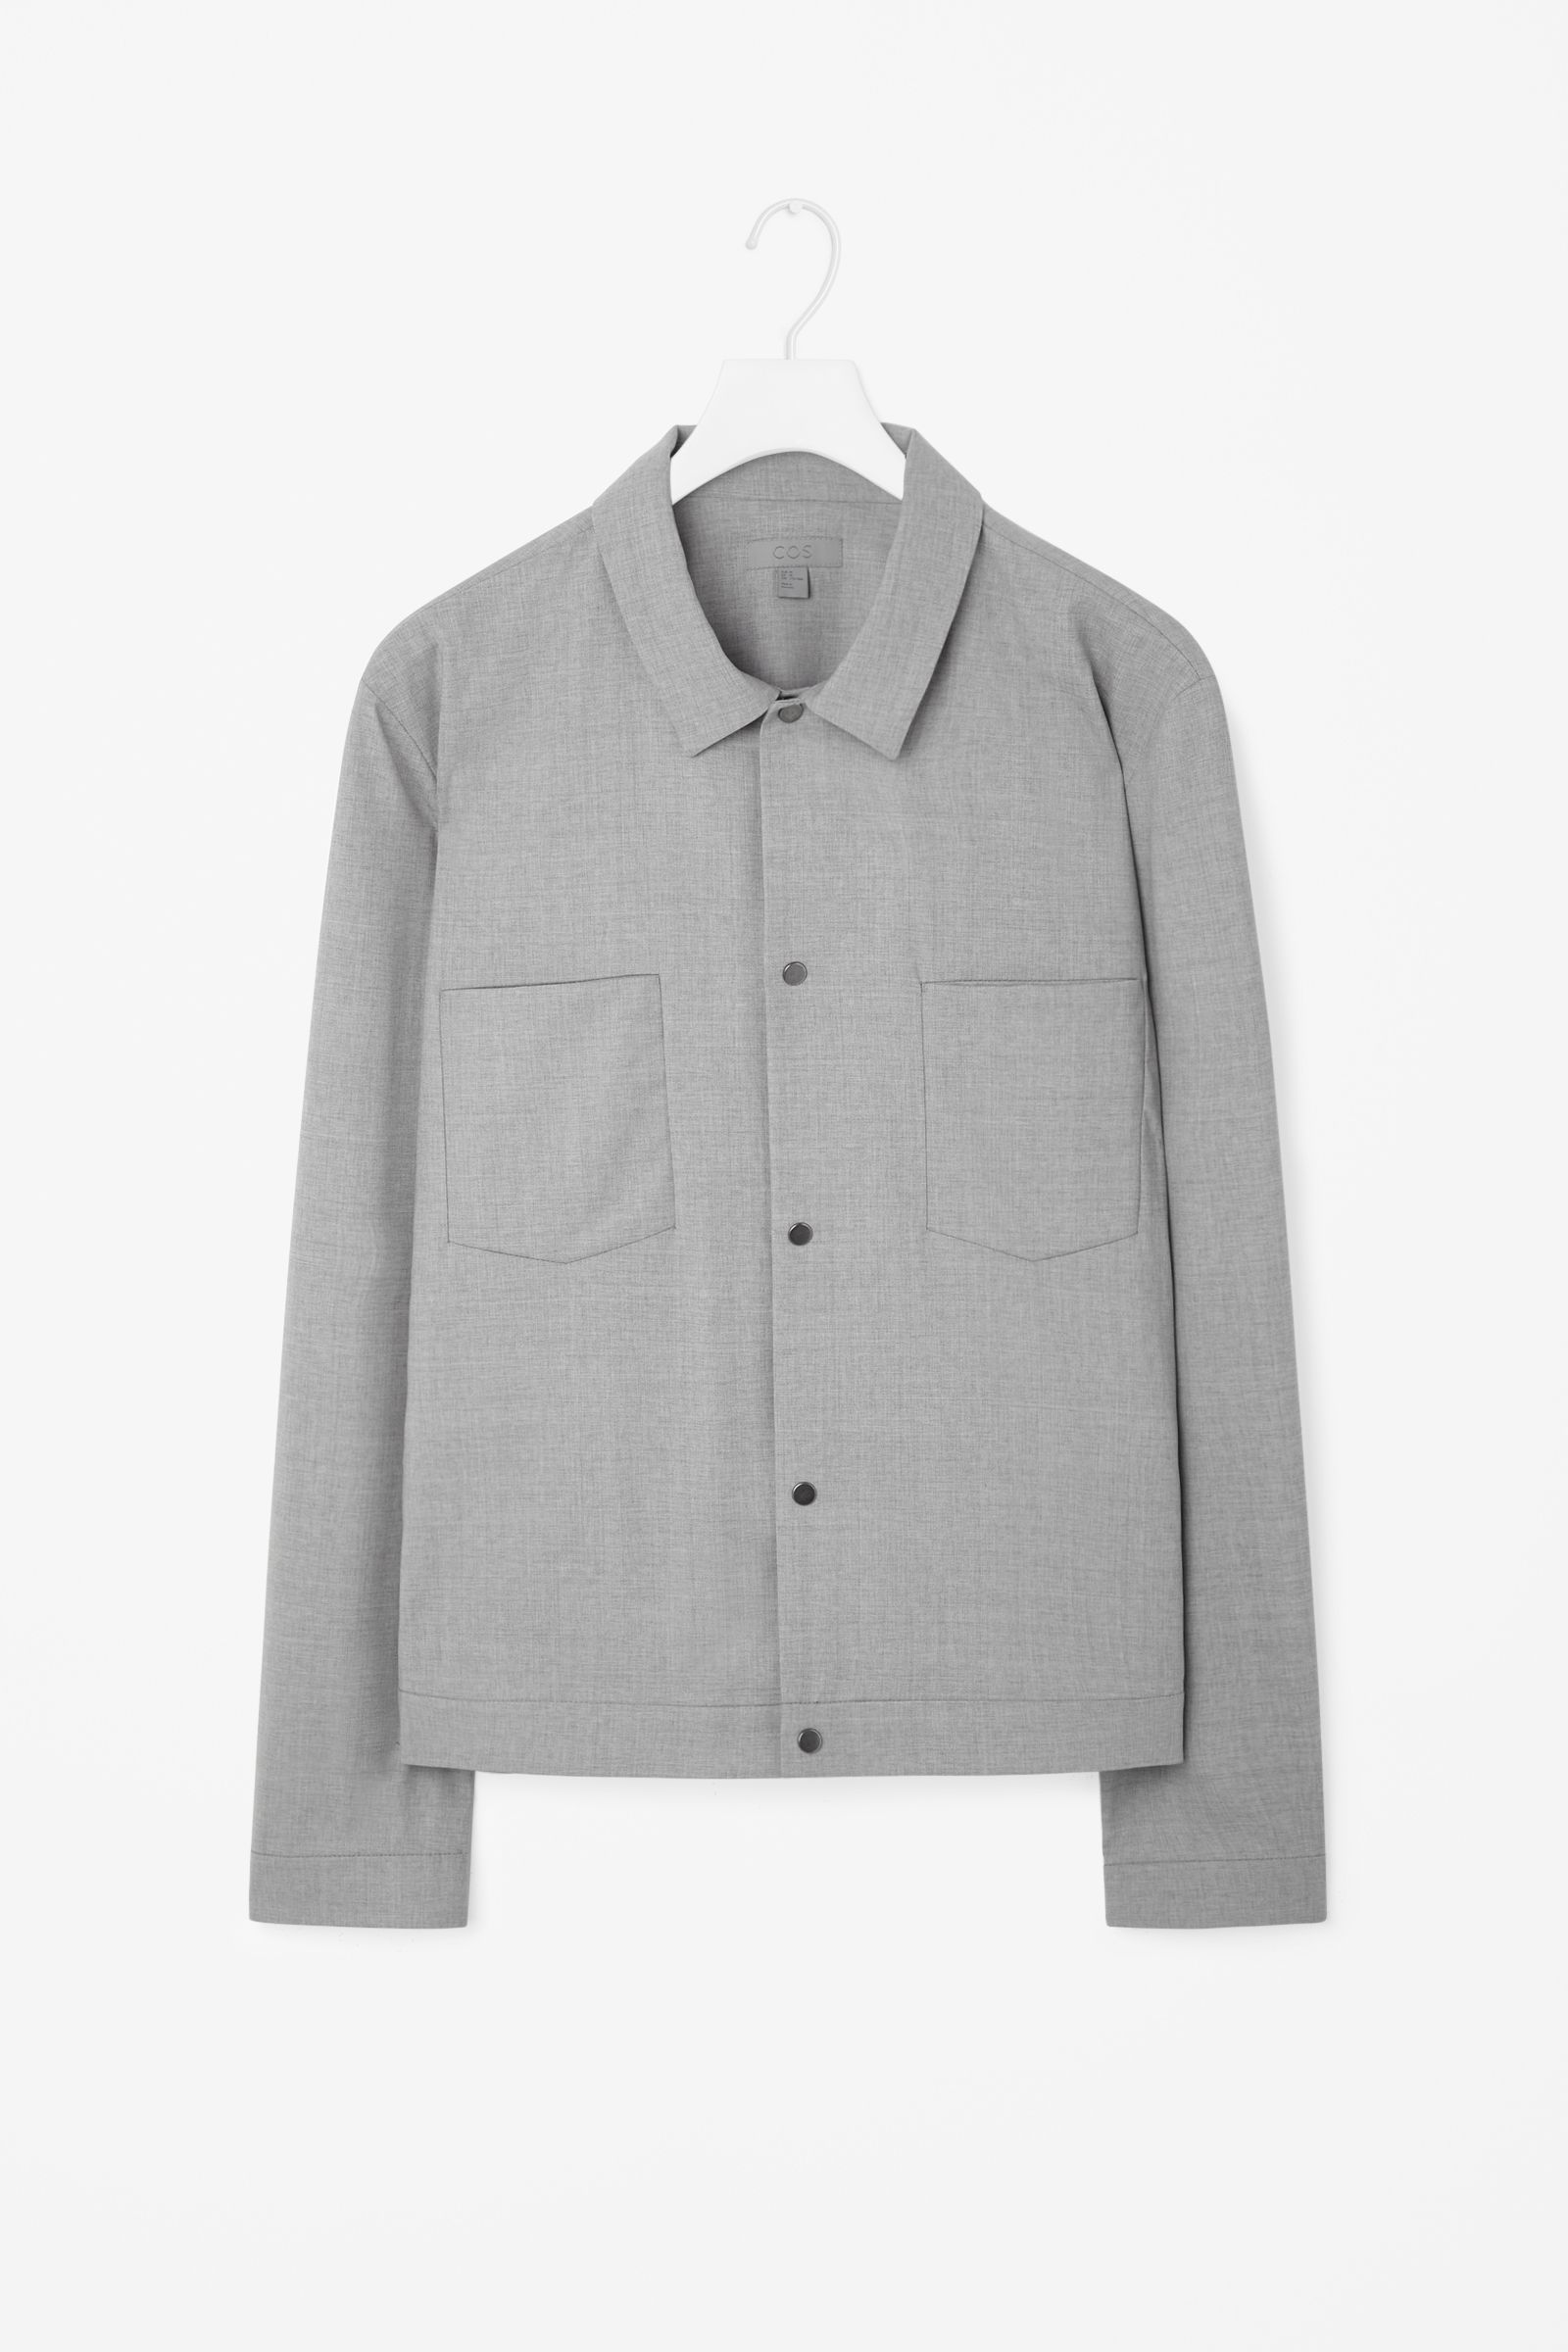 95c206f43 COS | Wool shirt jacket | TOP/ SHIRT/ SWEATER | Shirts, Shirt jacket ...